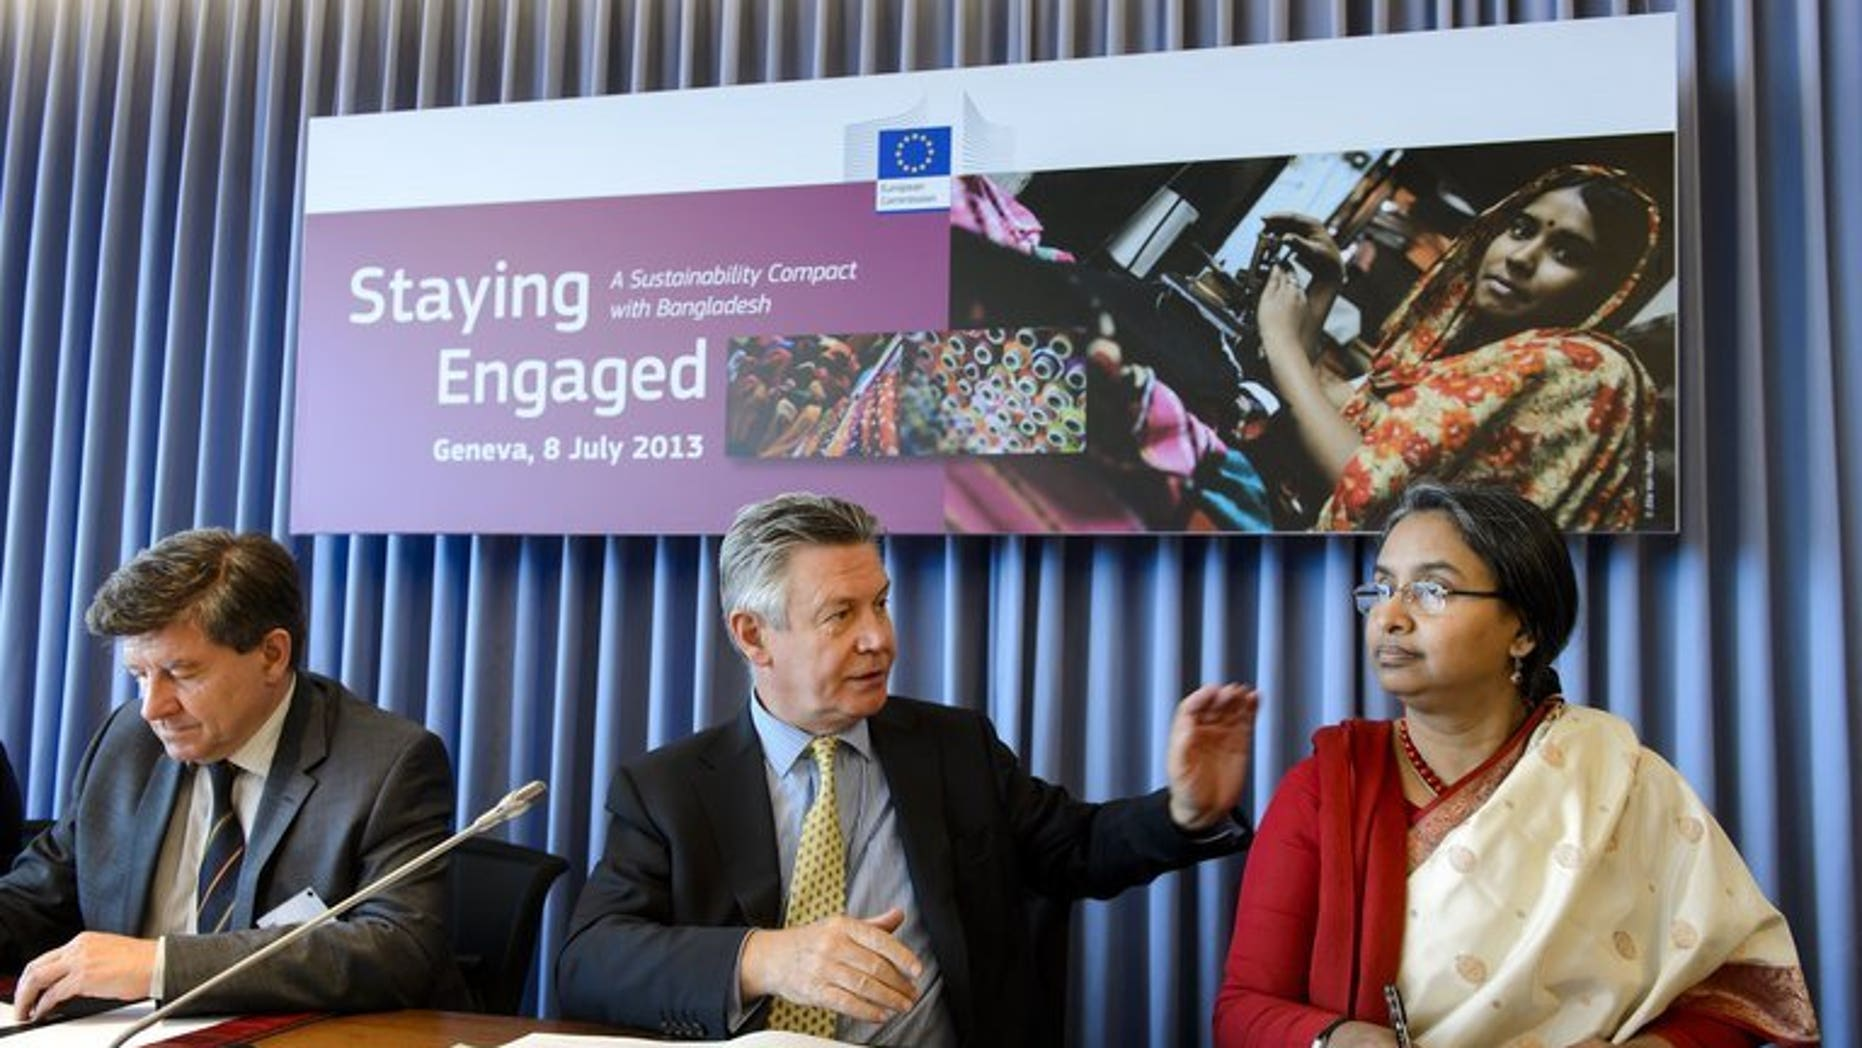 International Labor Organization Director-General Guy Ryder (L), EU trade commissioner Karel De Gucht and Bangladeshi Foreign Minister Dipu Moni on July 8, 2013 meet with employee, industry and employer representatives focused on improving trade and sustainable development in the ready-made garment industry in Bangladesh.